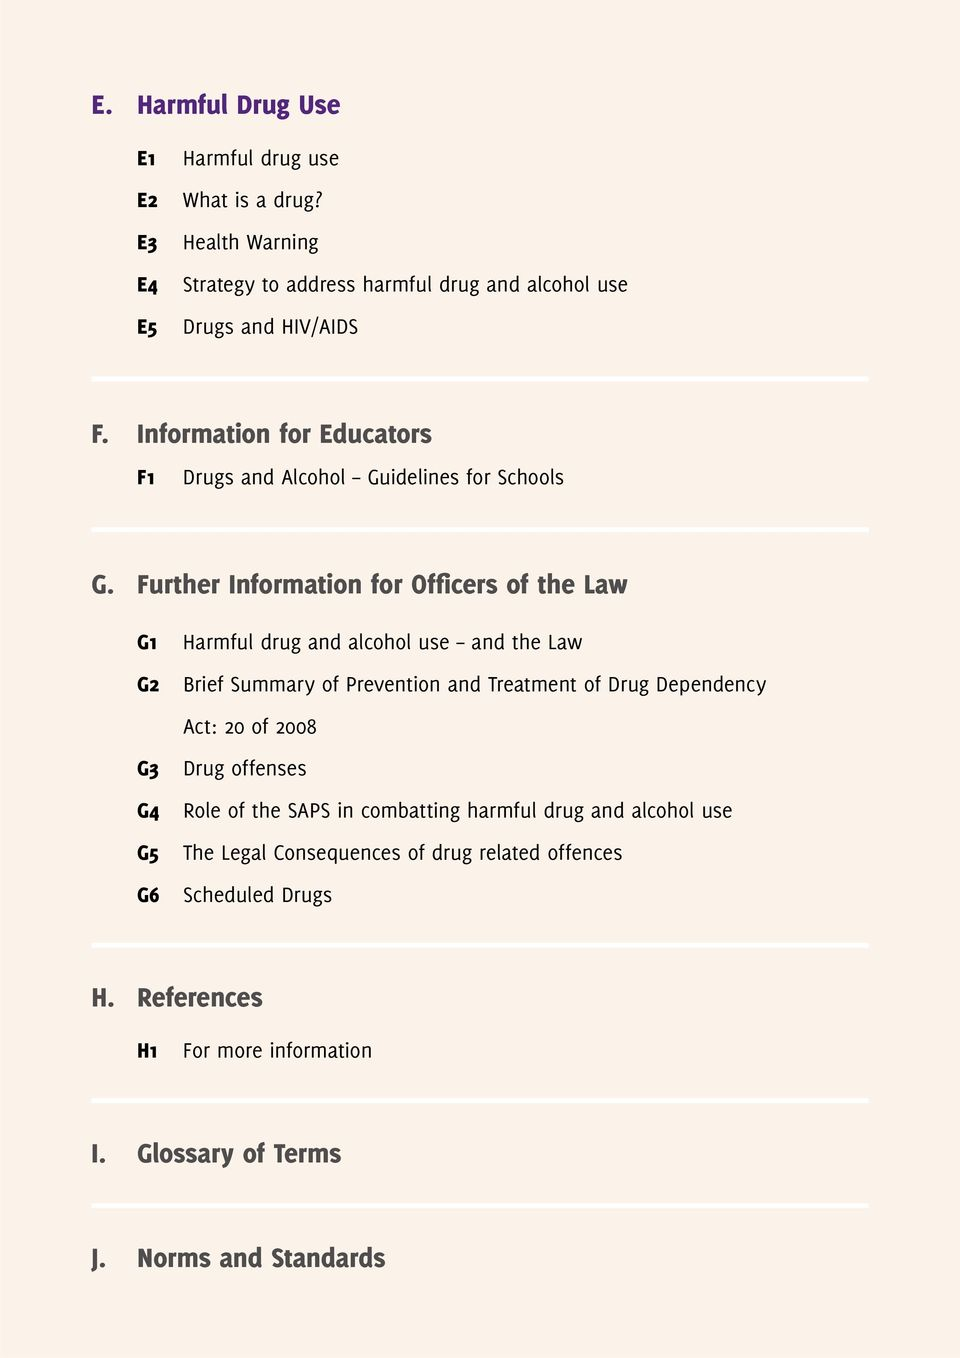 ... drug and alcohol use G5 The Legal Consequences of drug related